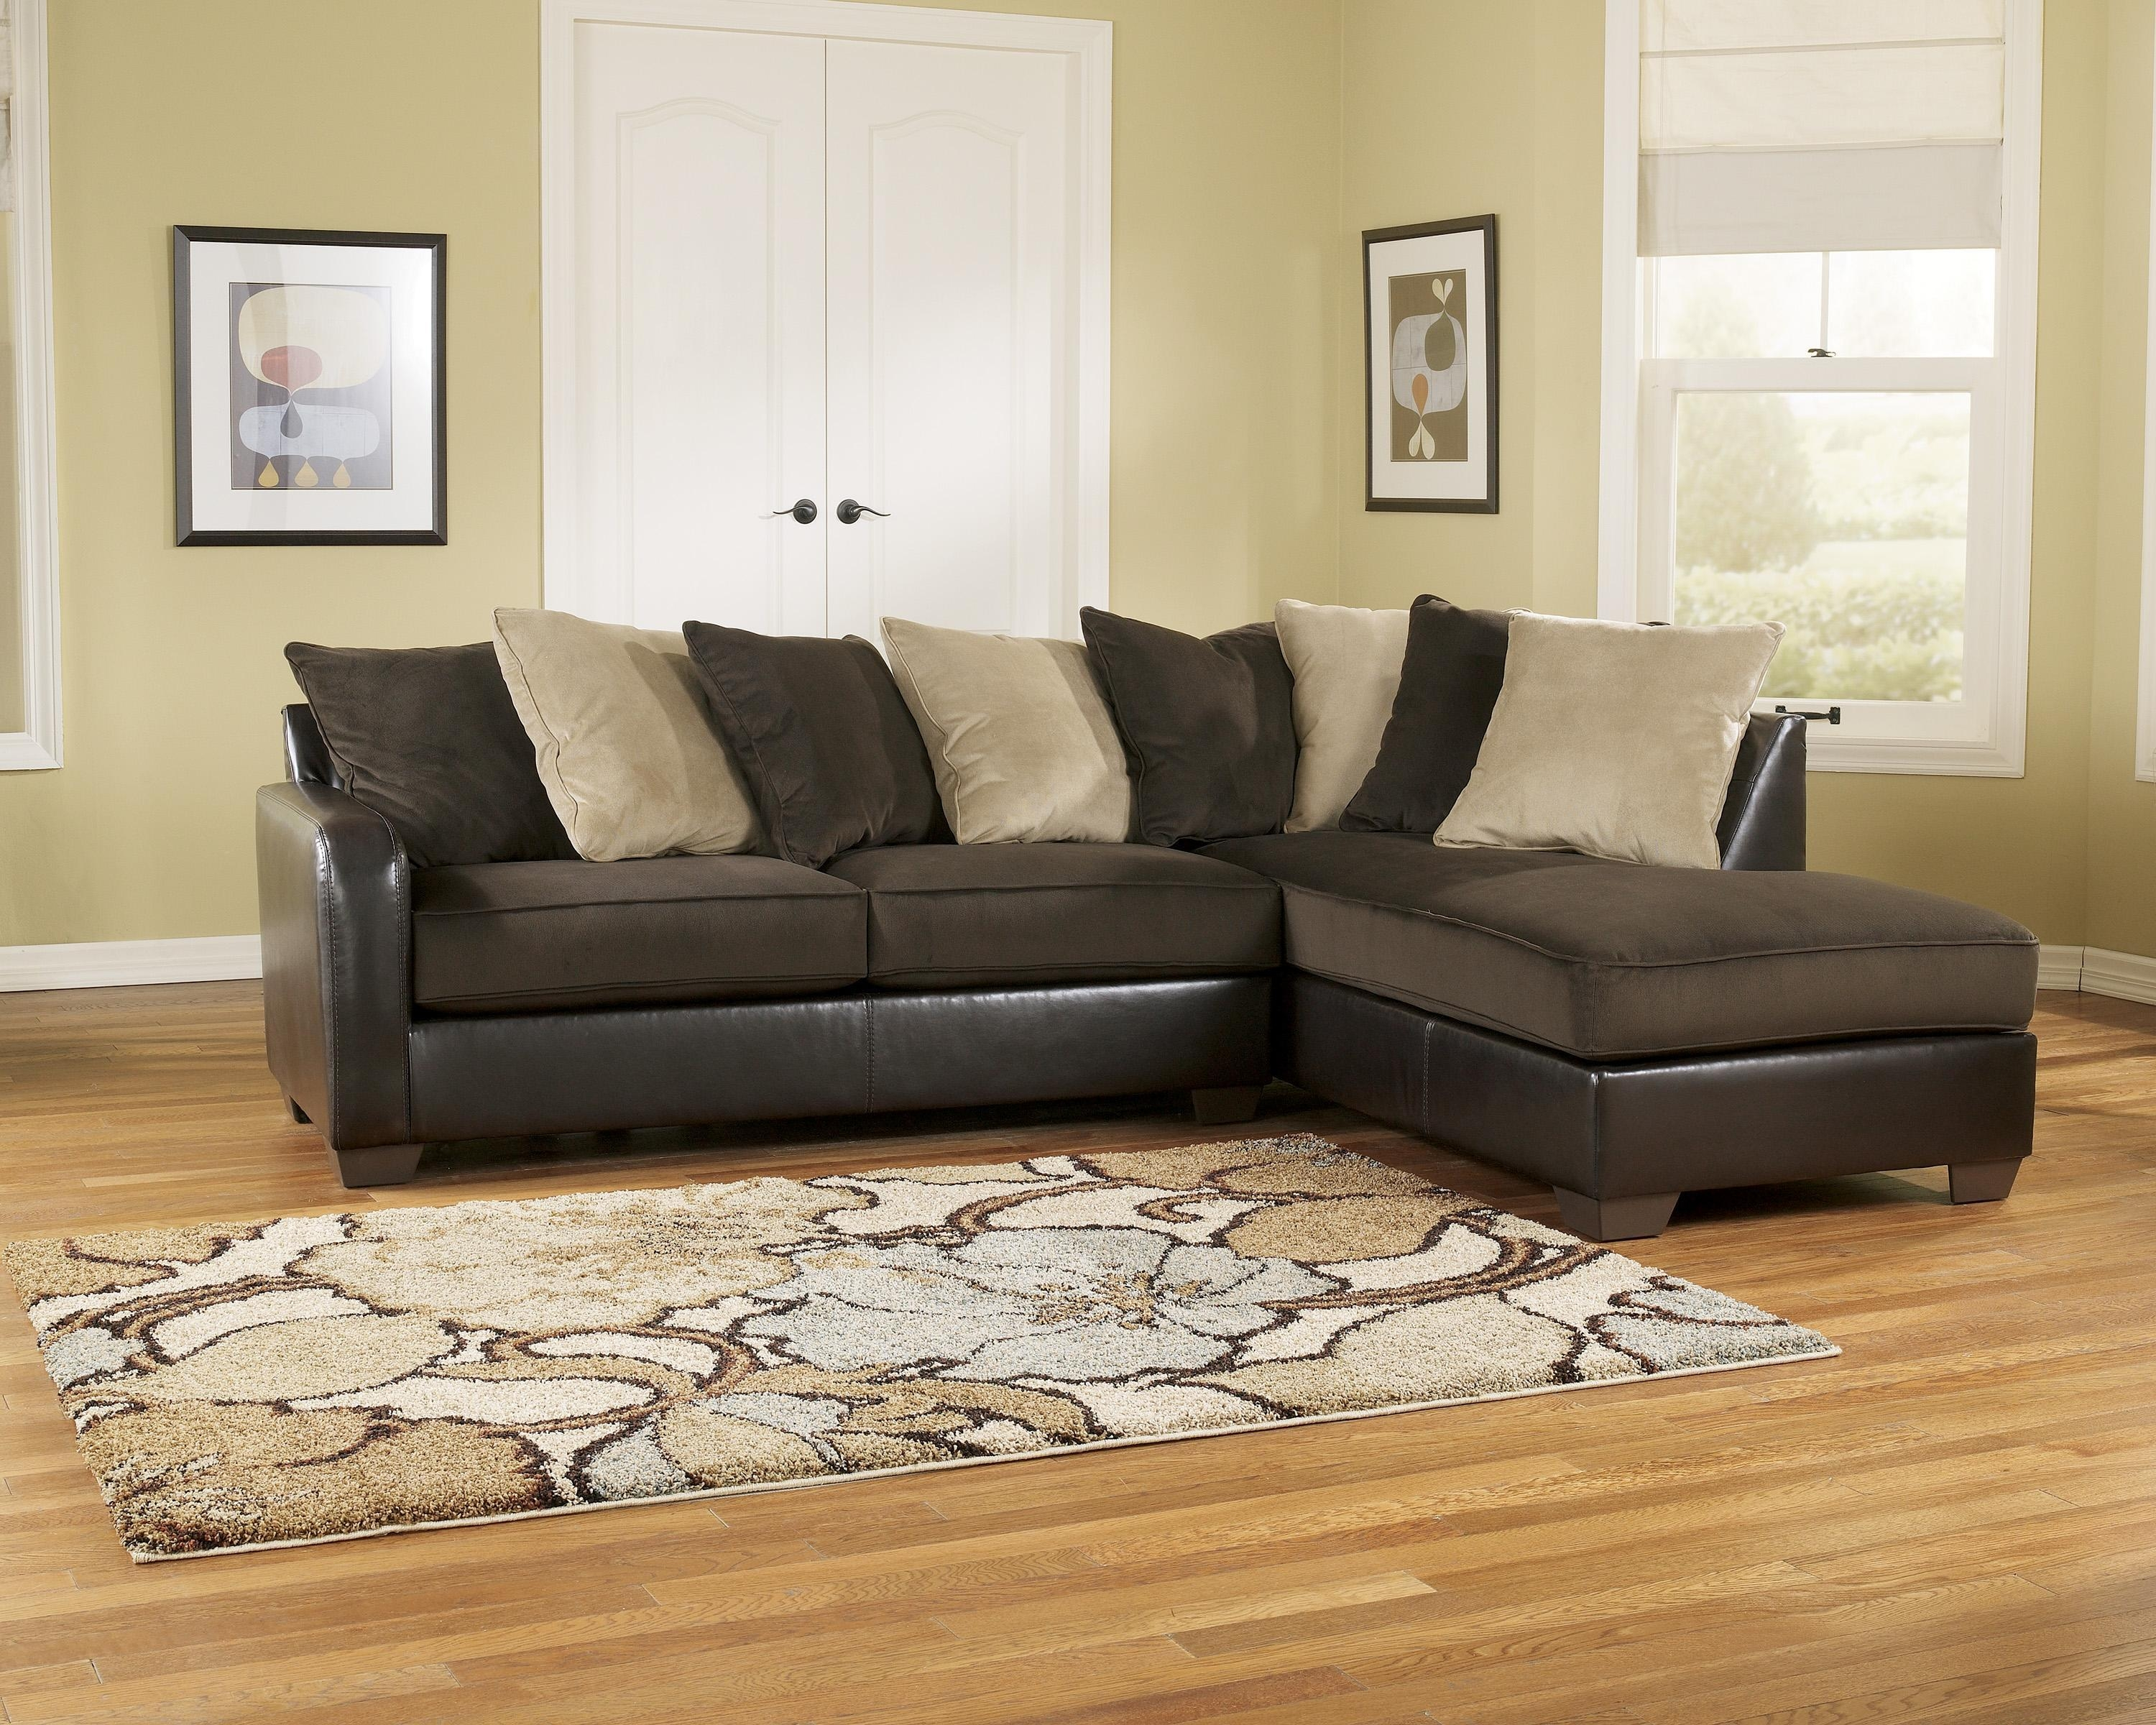 Sectional Sofas Ashley Furniture | Furniture Design Ideas Inside Ashley Furniture Leather Sectional Sofas (Image 14 of 20)